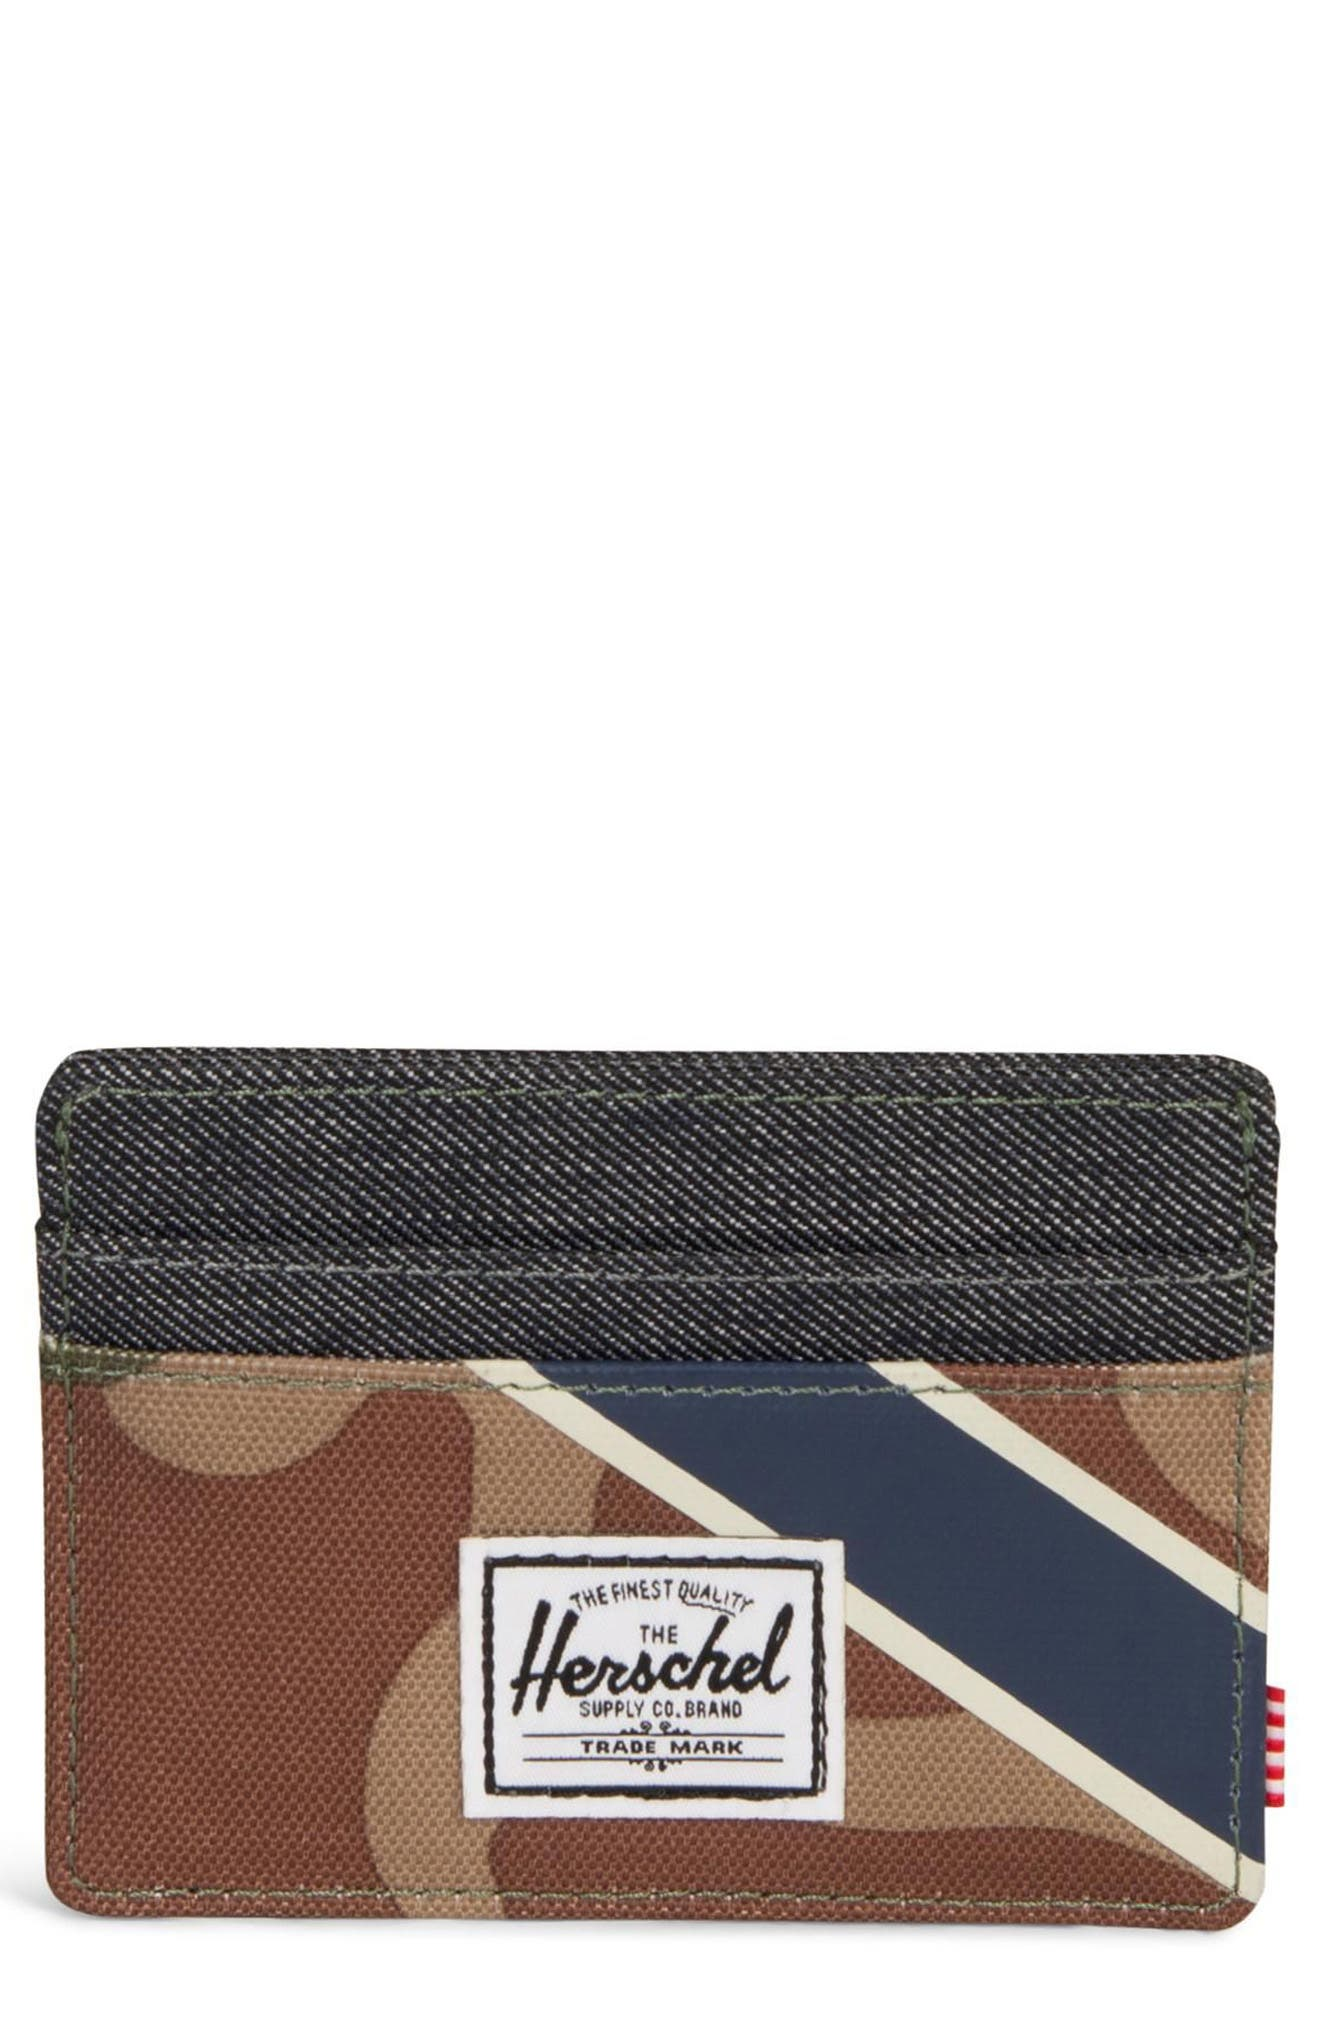 Charlie Card Case,                             Main thumbnail 1, color,                             WOODLAND/ SILVER GREEN/ DENIM